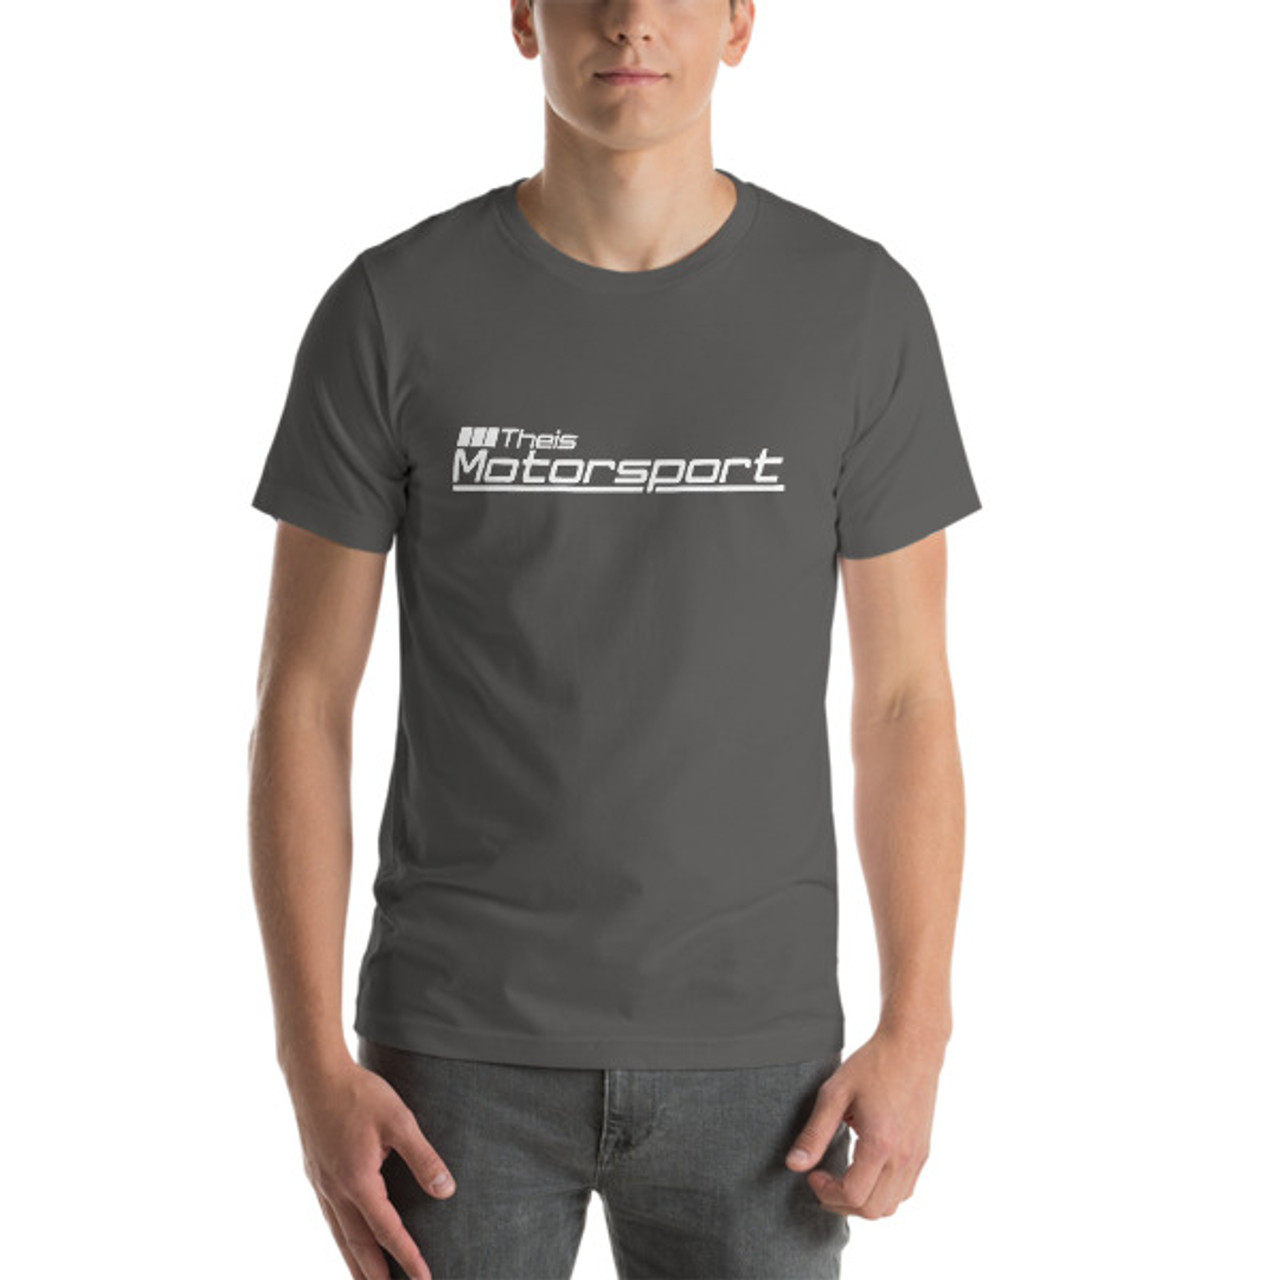 Theis Motorsport Unisex Short Sleeve Jersey T-Shirt with Tear Away Label